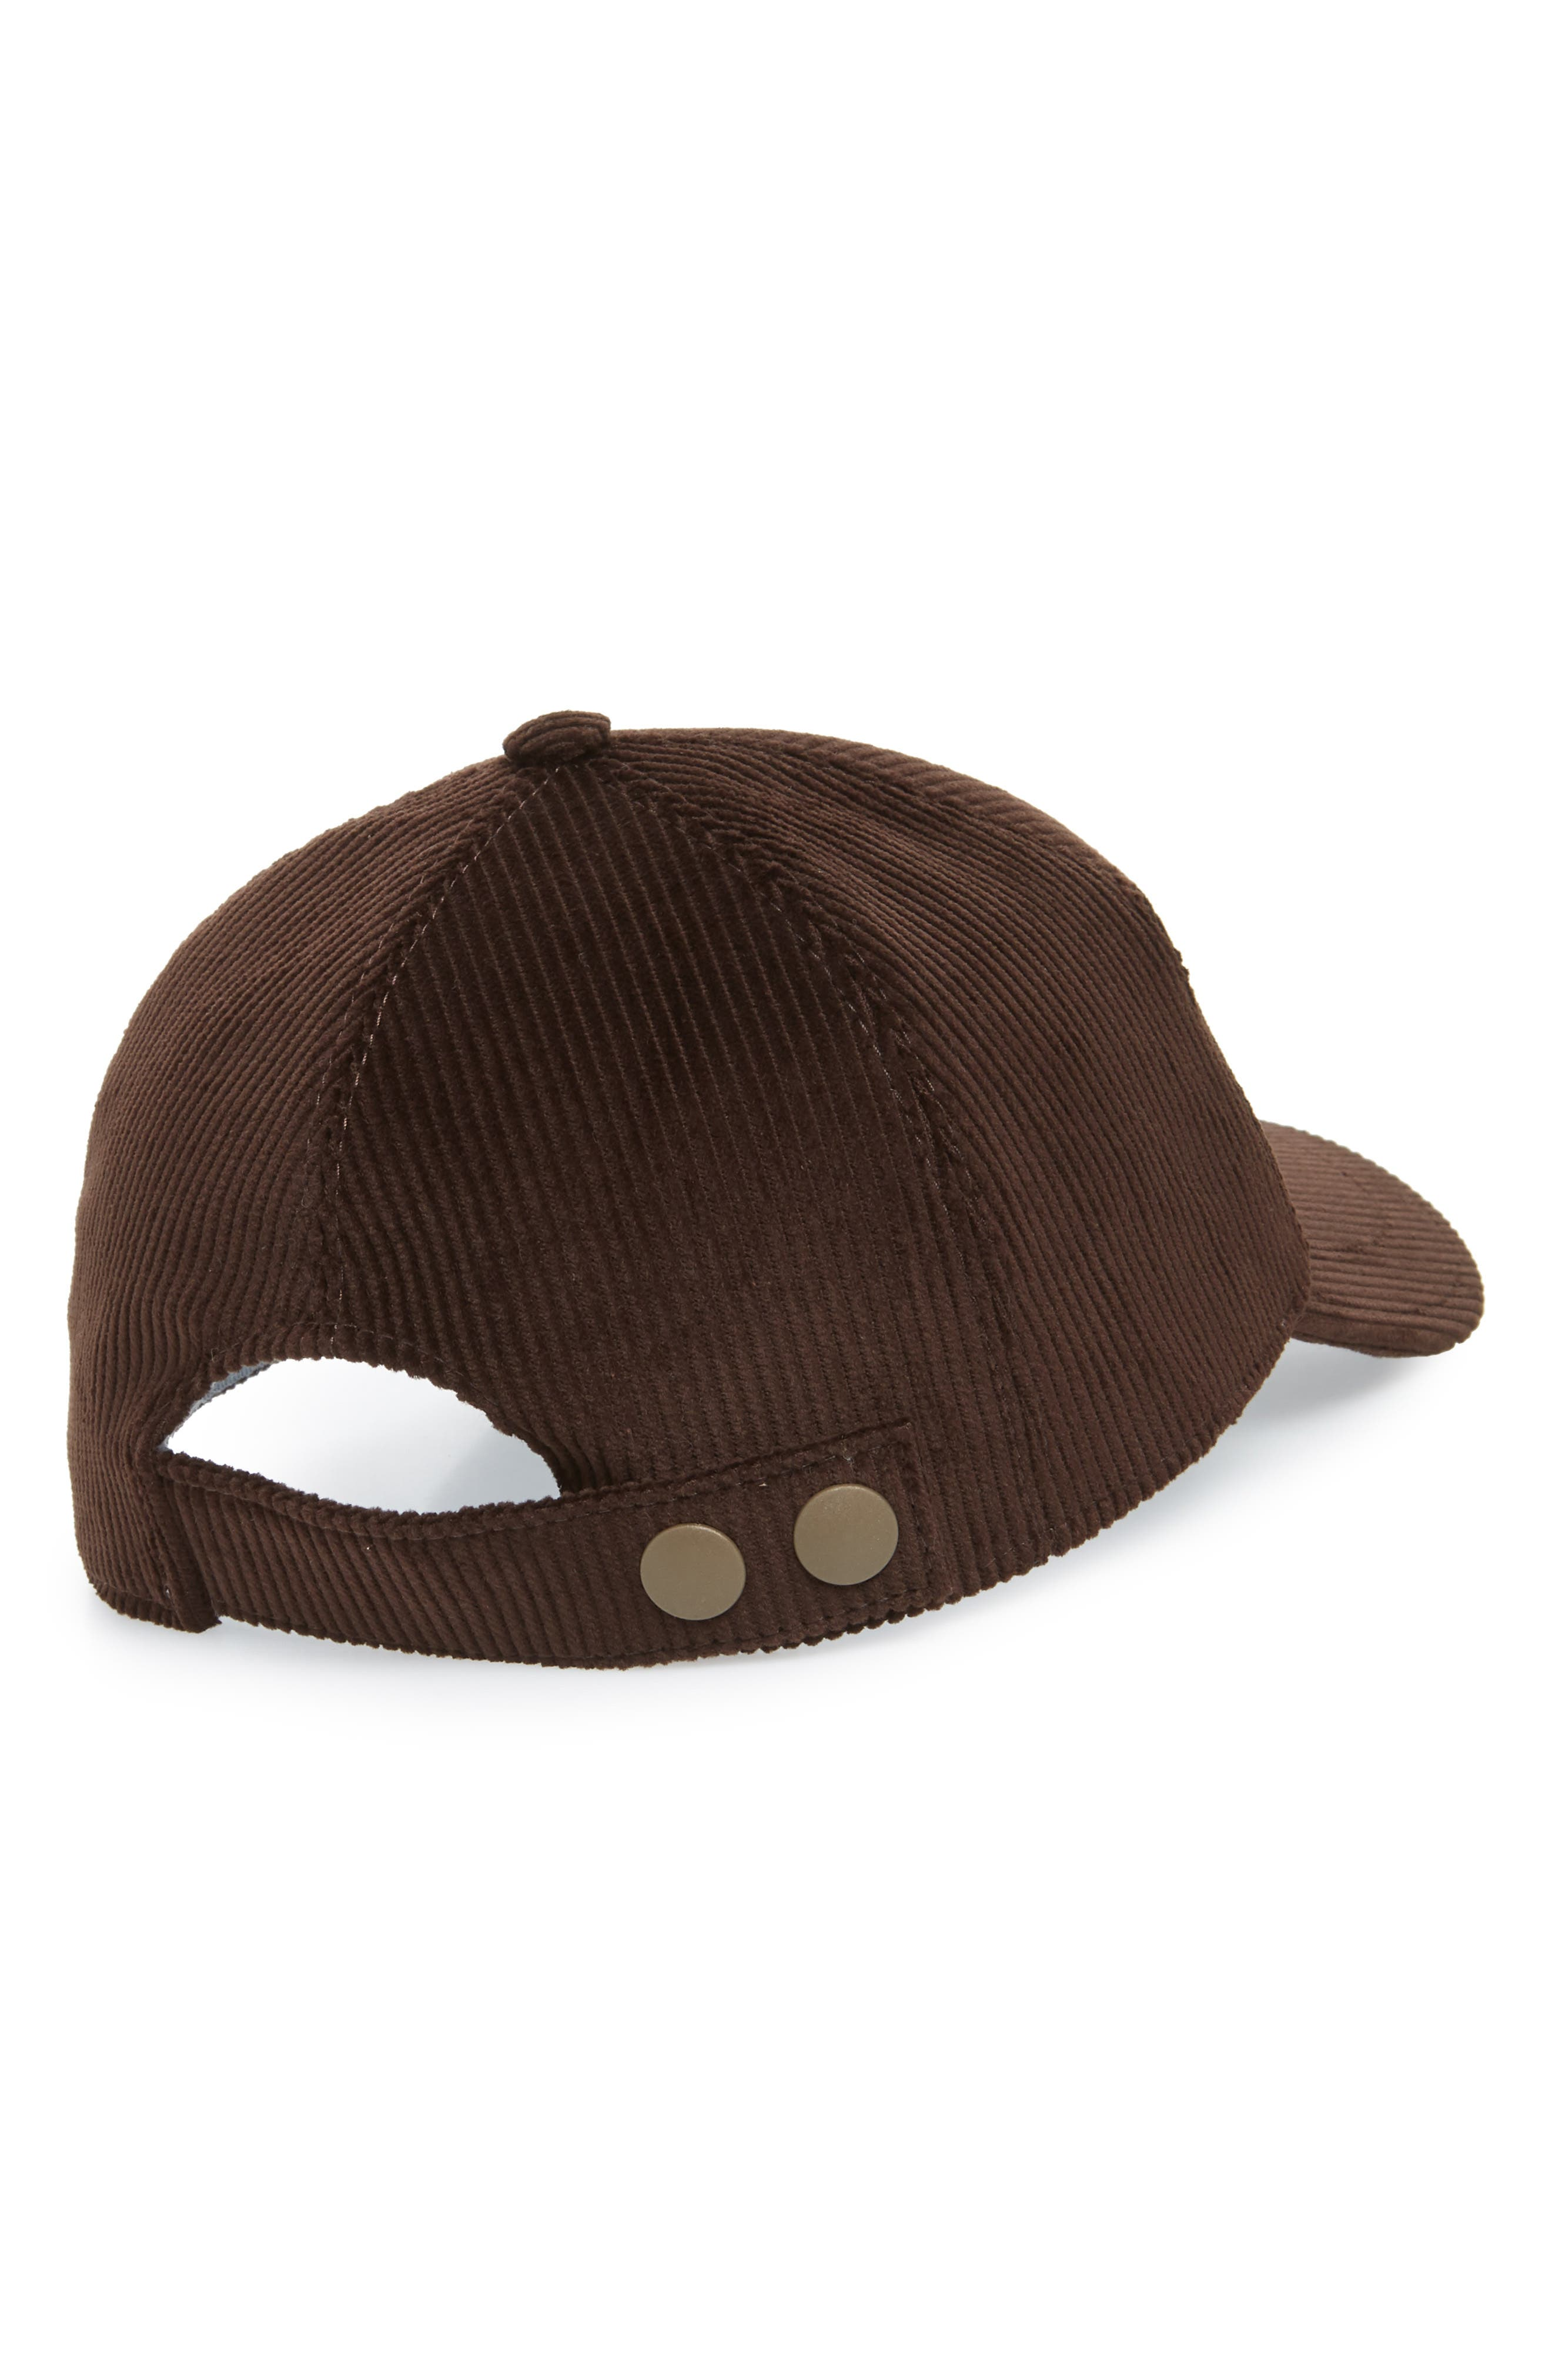 Corduroy Ball Cap,                             Alternate thumbnail 2, color,                             CHOCOLATE